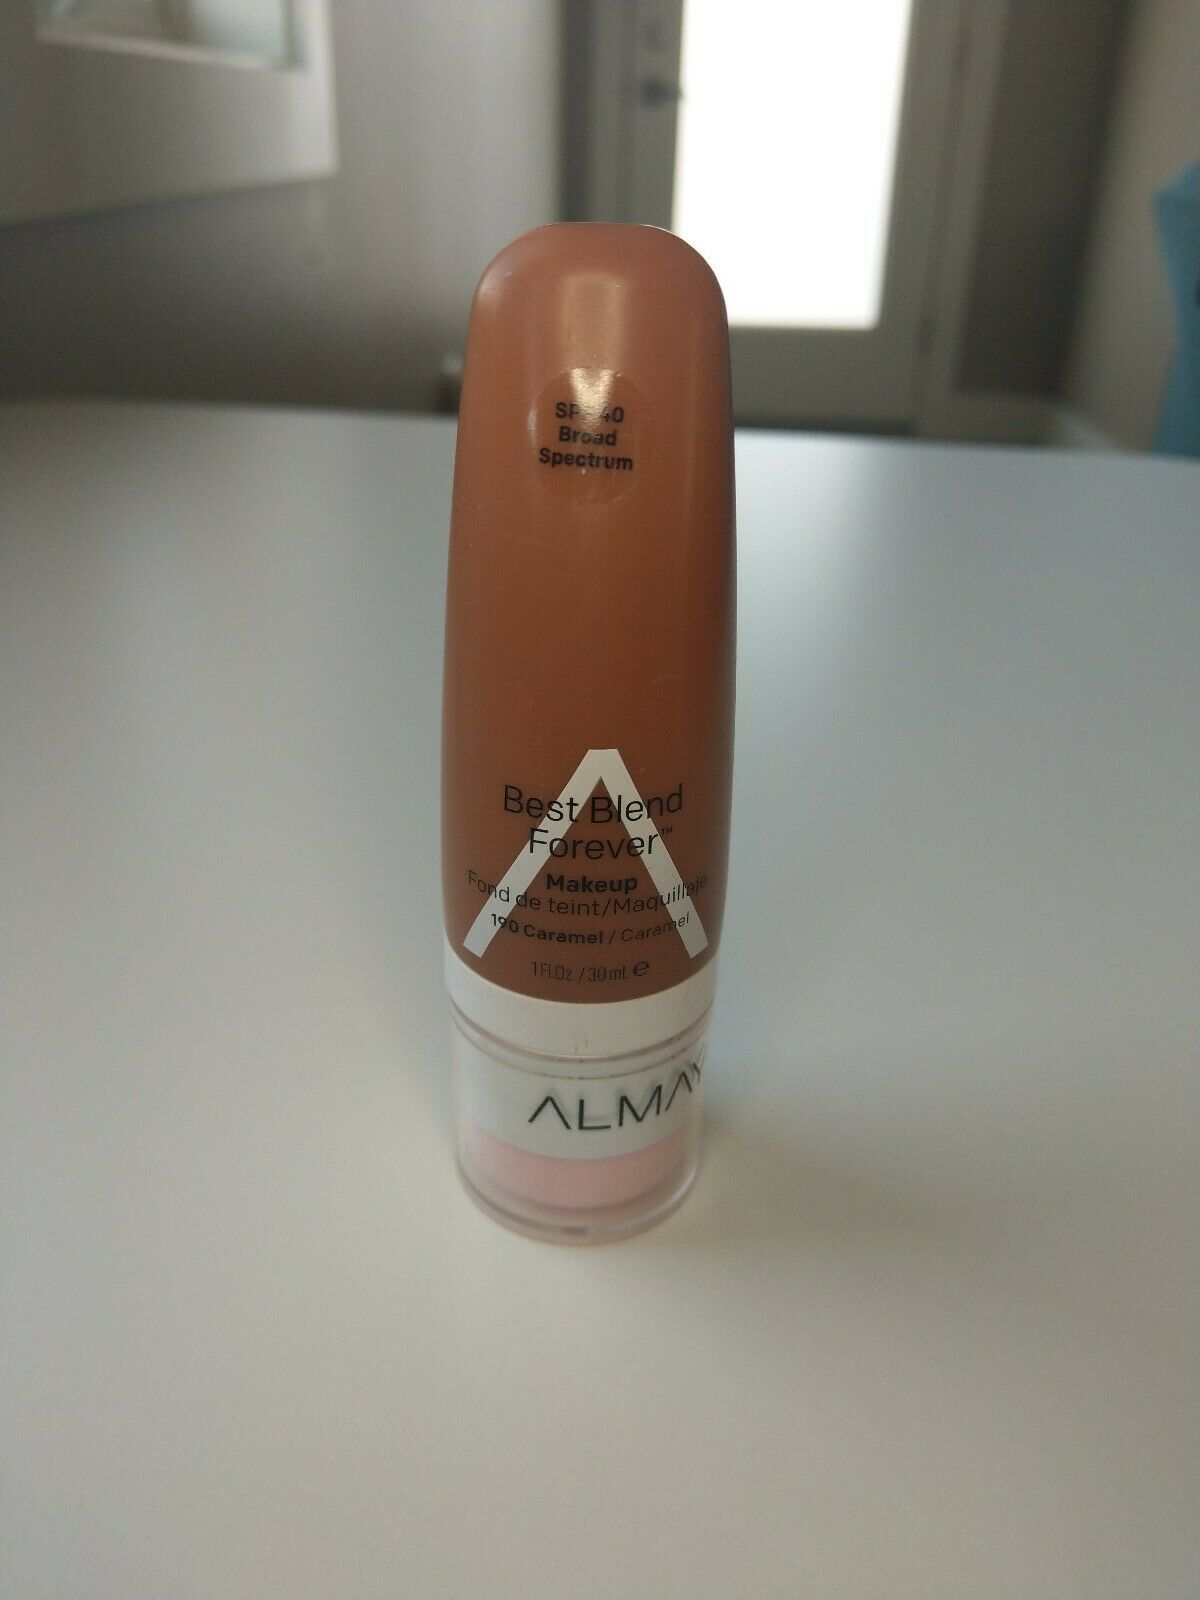 Primary image for Almay Best Blend Forever Makeup. 190 Caramel Spf 40.